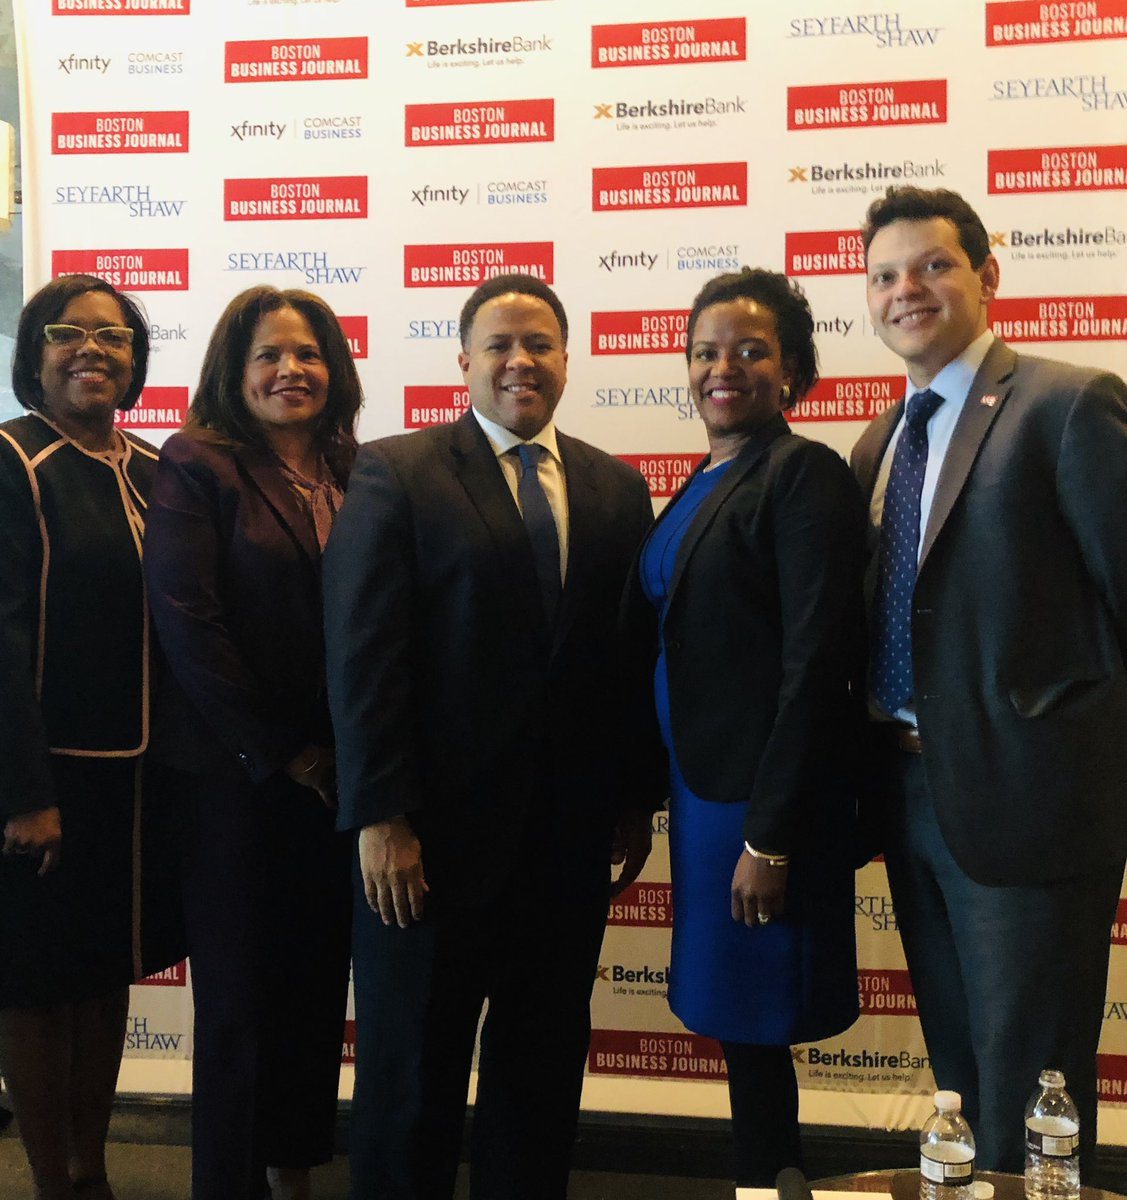 test Twitter Media - Great morning @BosBizJournal #BBJDiversity event. Proud #Cathedral alumna @DonnaGittens moderated an amazing panel of (L-R) Marianne Lancaster, Orlando Watkins of @bostonfdn, @ldforry of @SuffolkBuilds and @IvanEspinozaESQ. Many thanks to our fantastic partners @BerkshireBank https://t.co/ncvCmkhRwJ